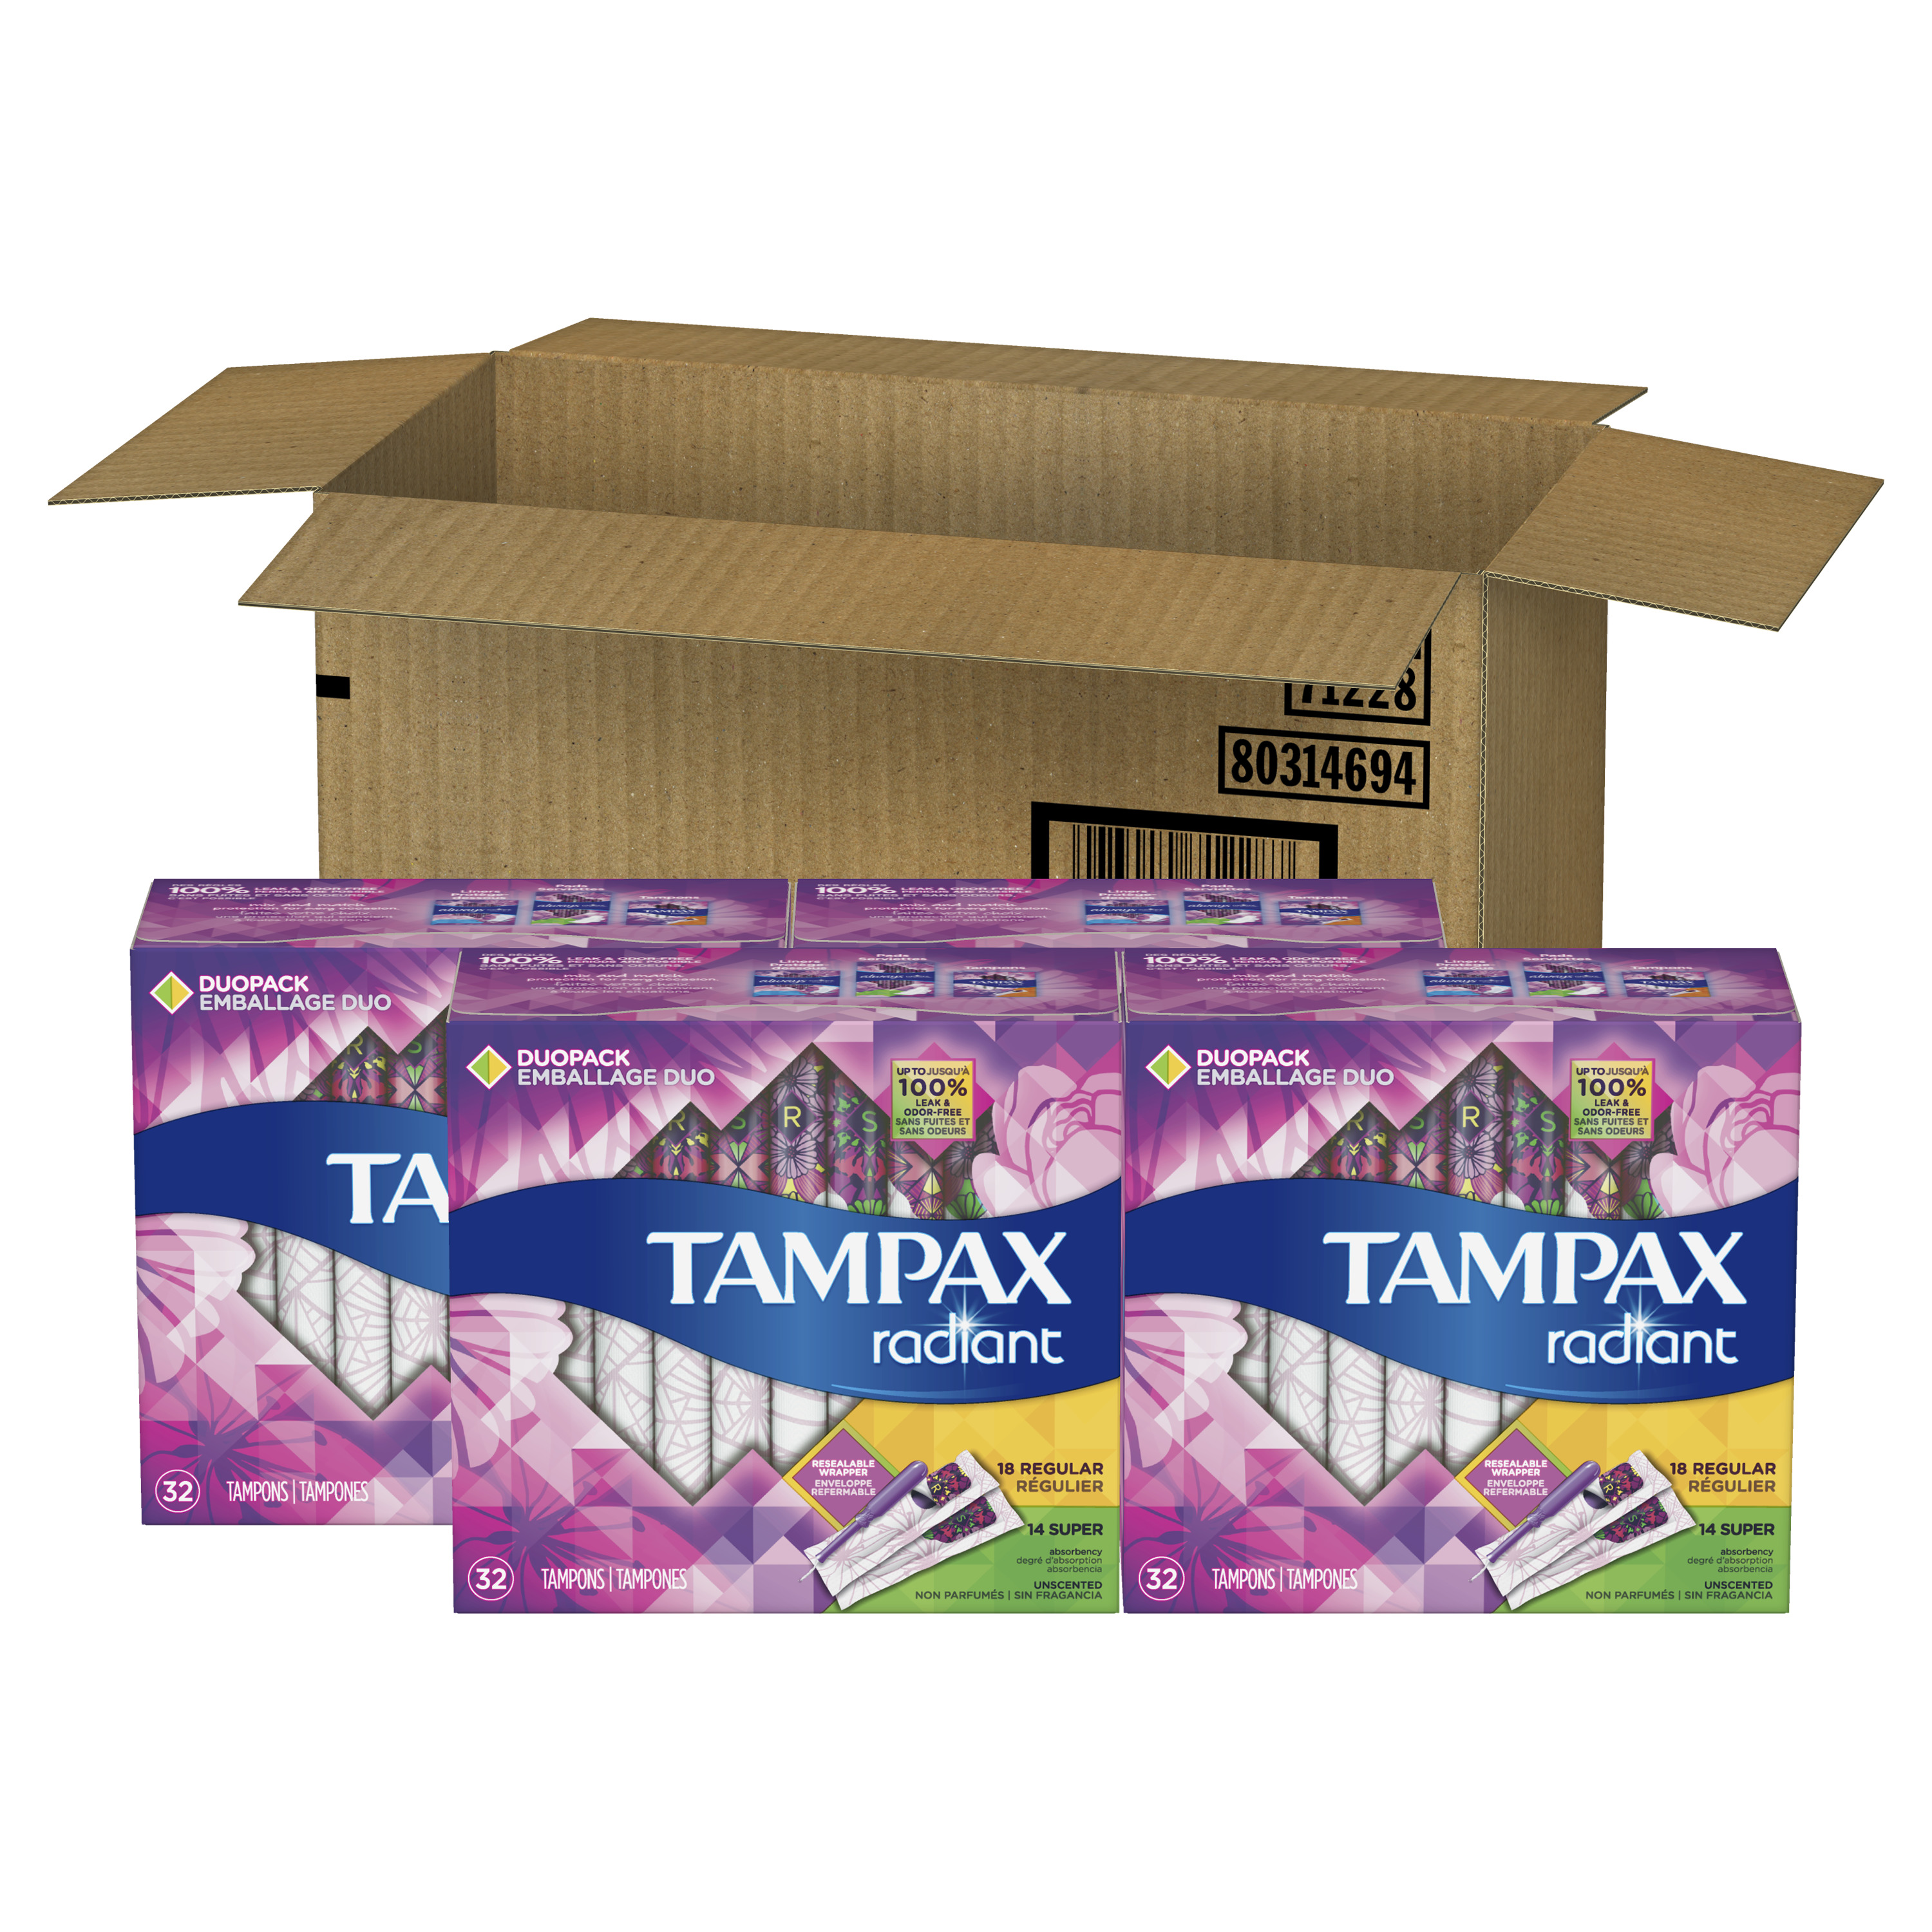 Tampax Radiant DuoPack (Regular and Super) Plastic Tampons, Unscented, 128 Count